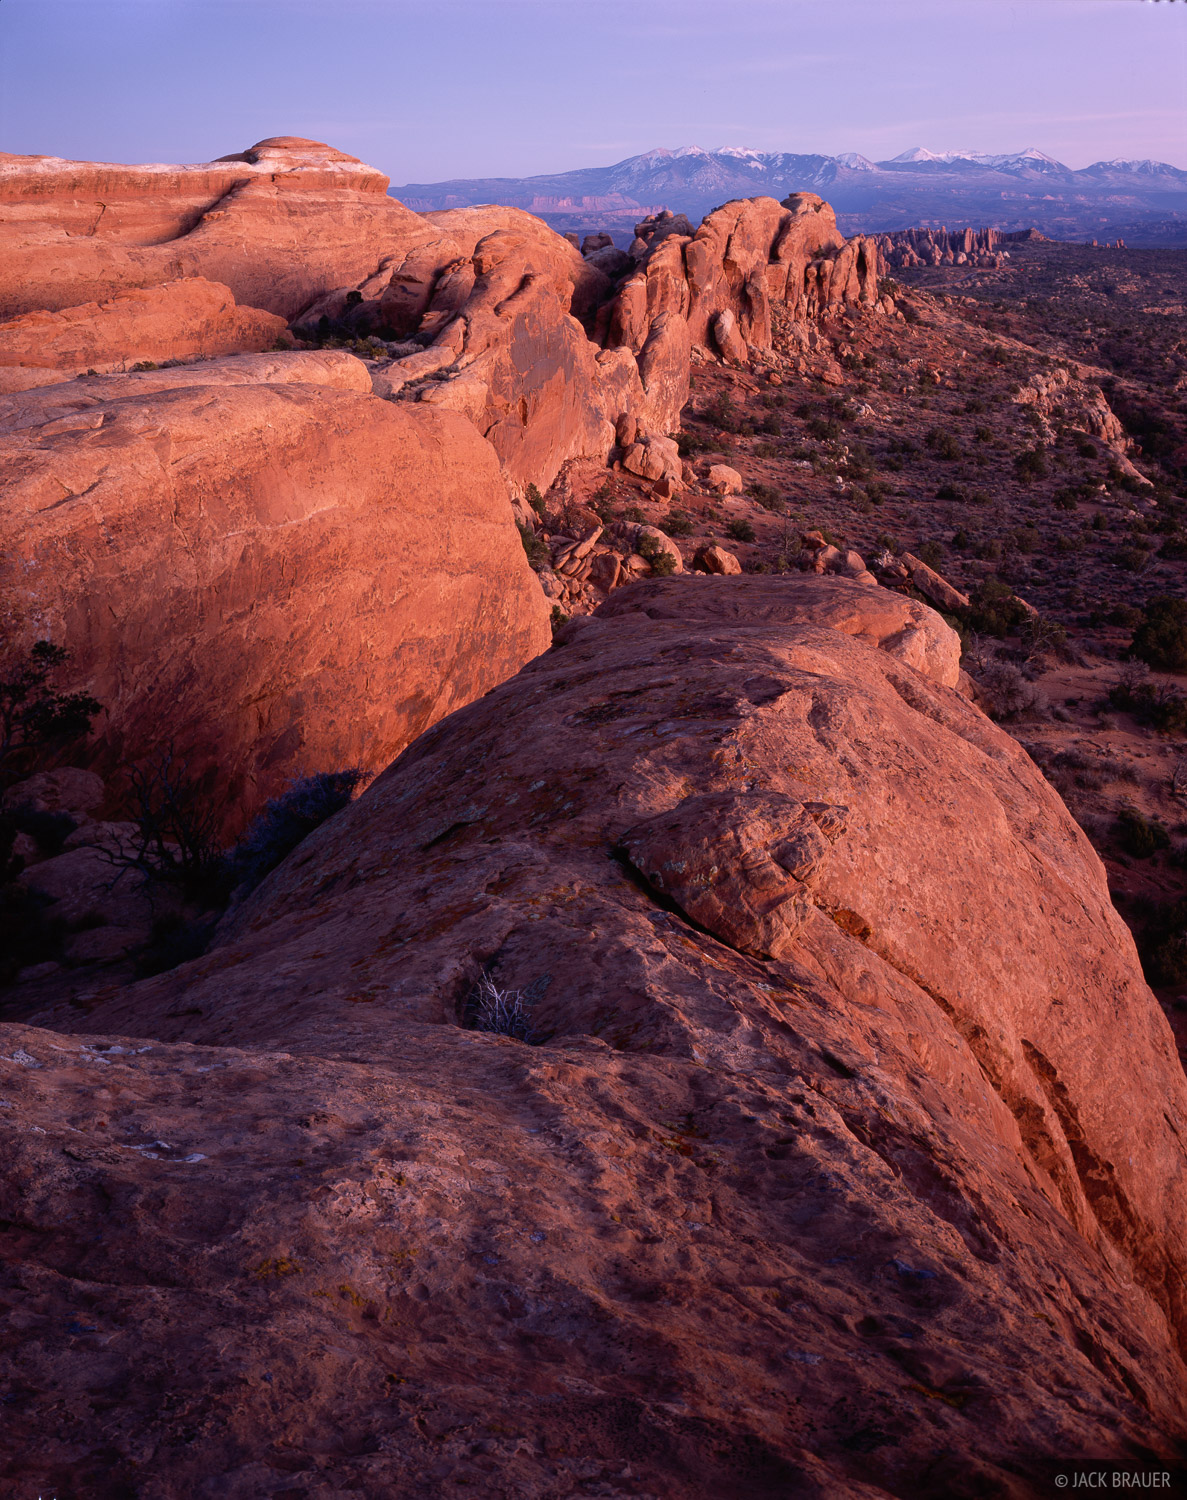 Dusk light illuminates the great fins of Arches National Park, near Moab. La Sal Mountains are towering in the distance - November...